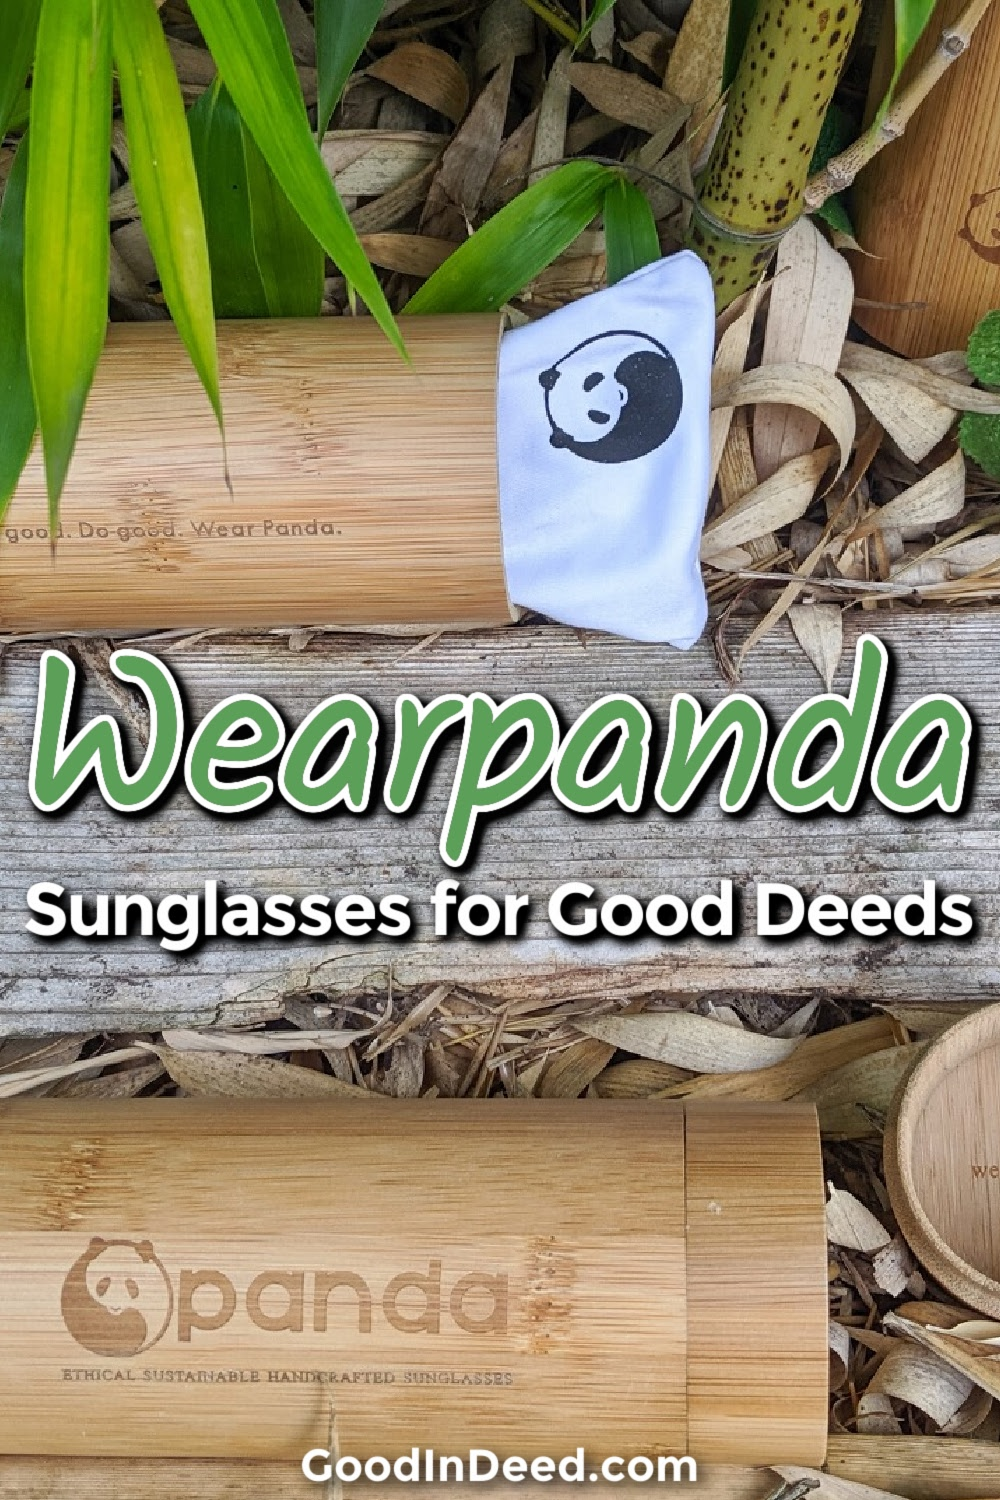 Wearpanda sunglasses are capable of doing more than just protecting your eyes from the harmful rays of sunlight.